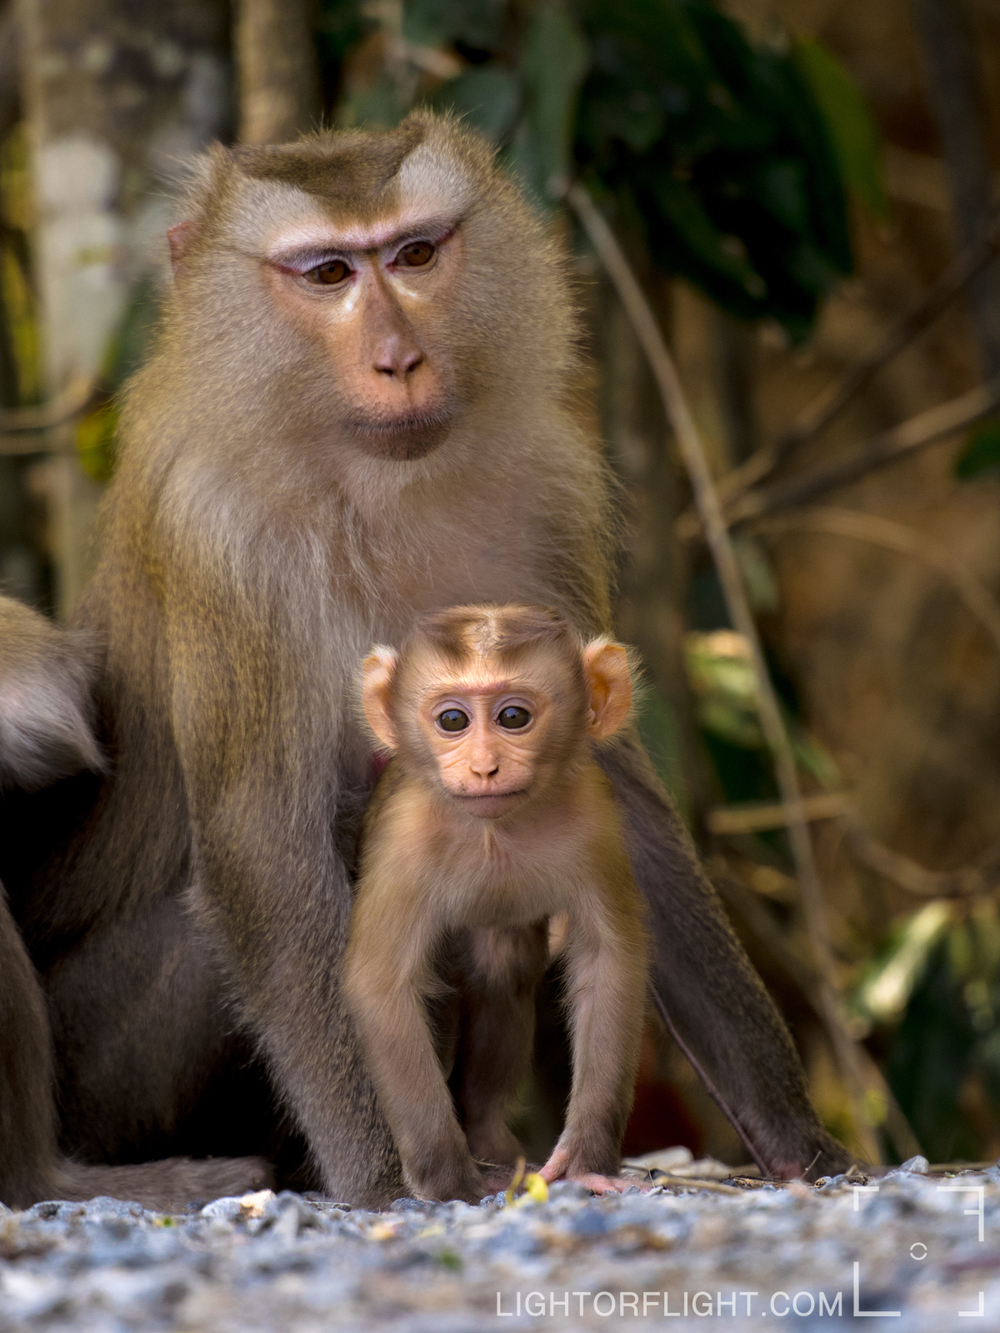 Northern Pig-Tailed Macaque (Macaca leonine)